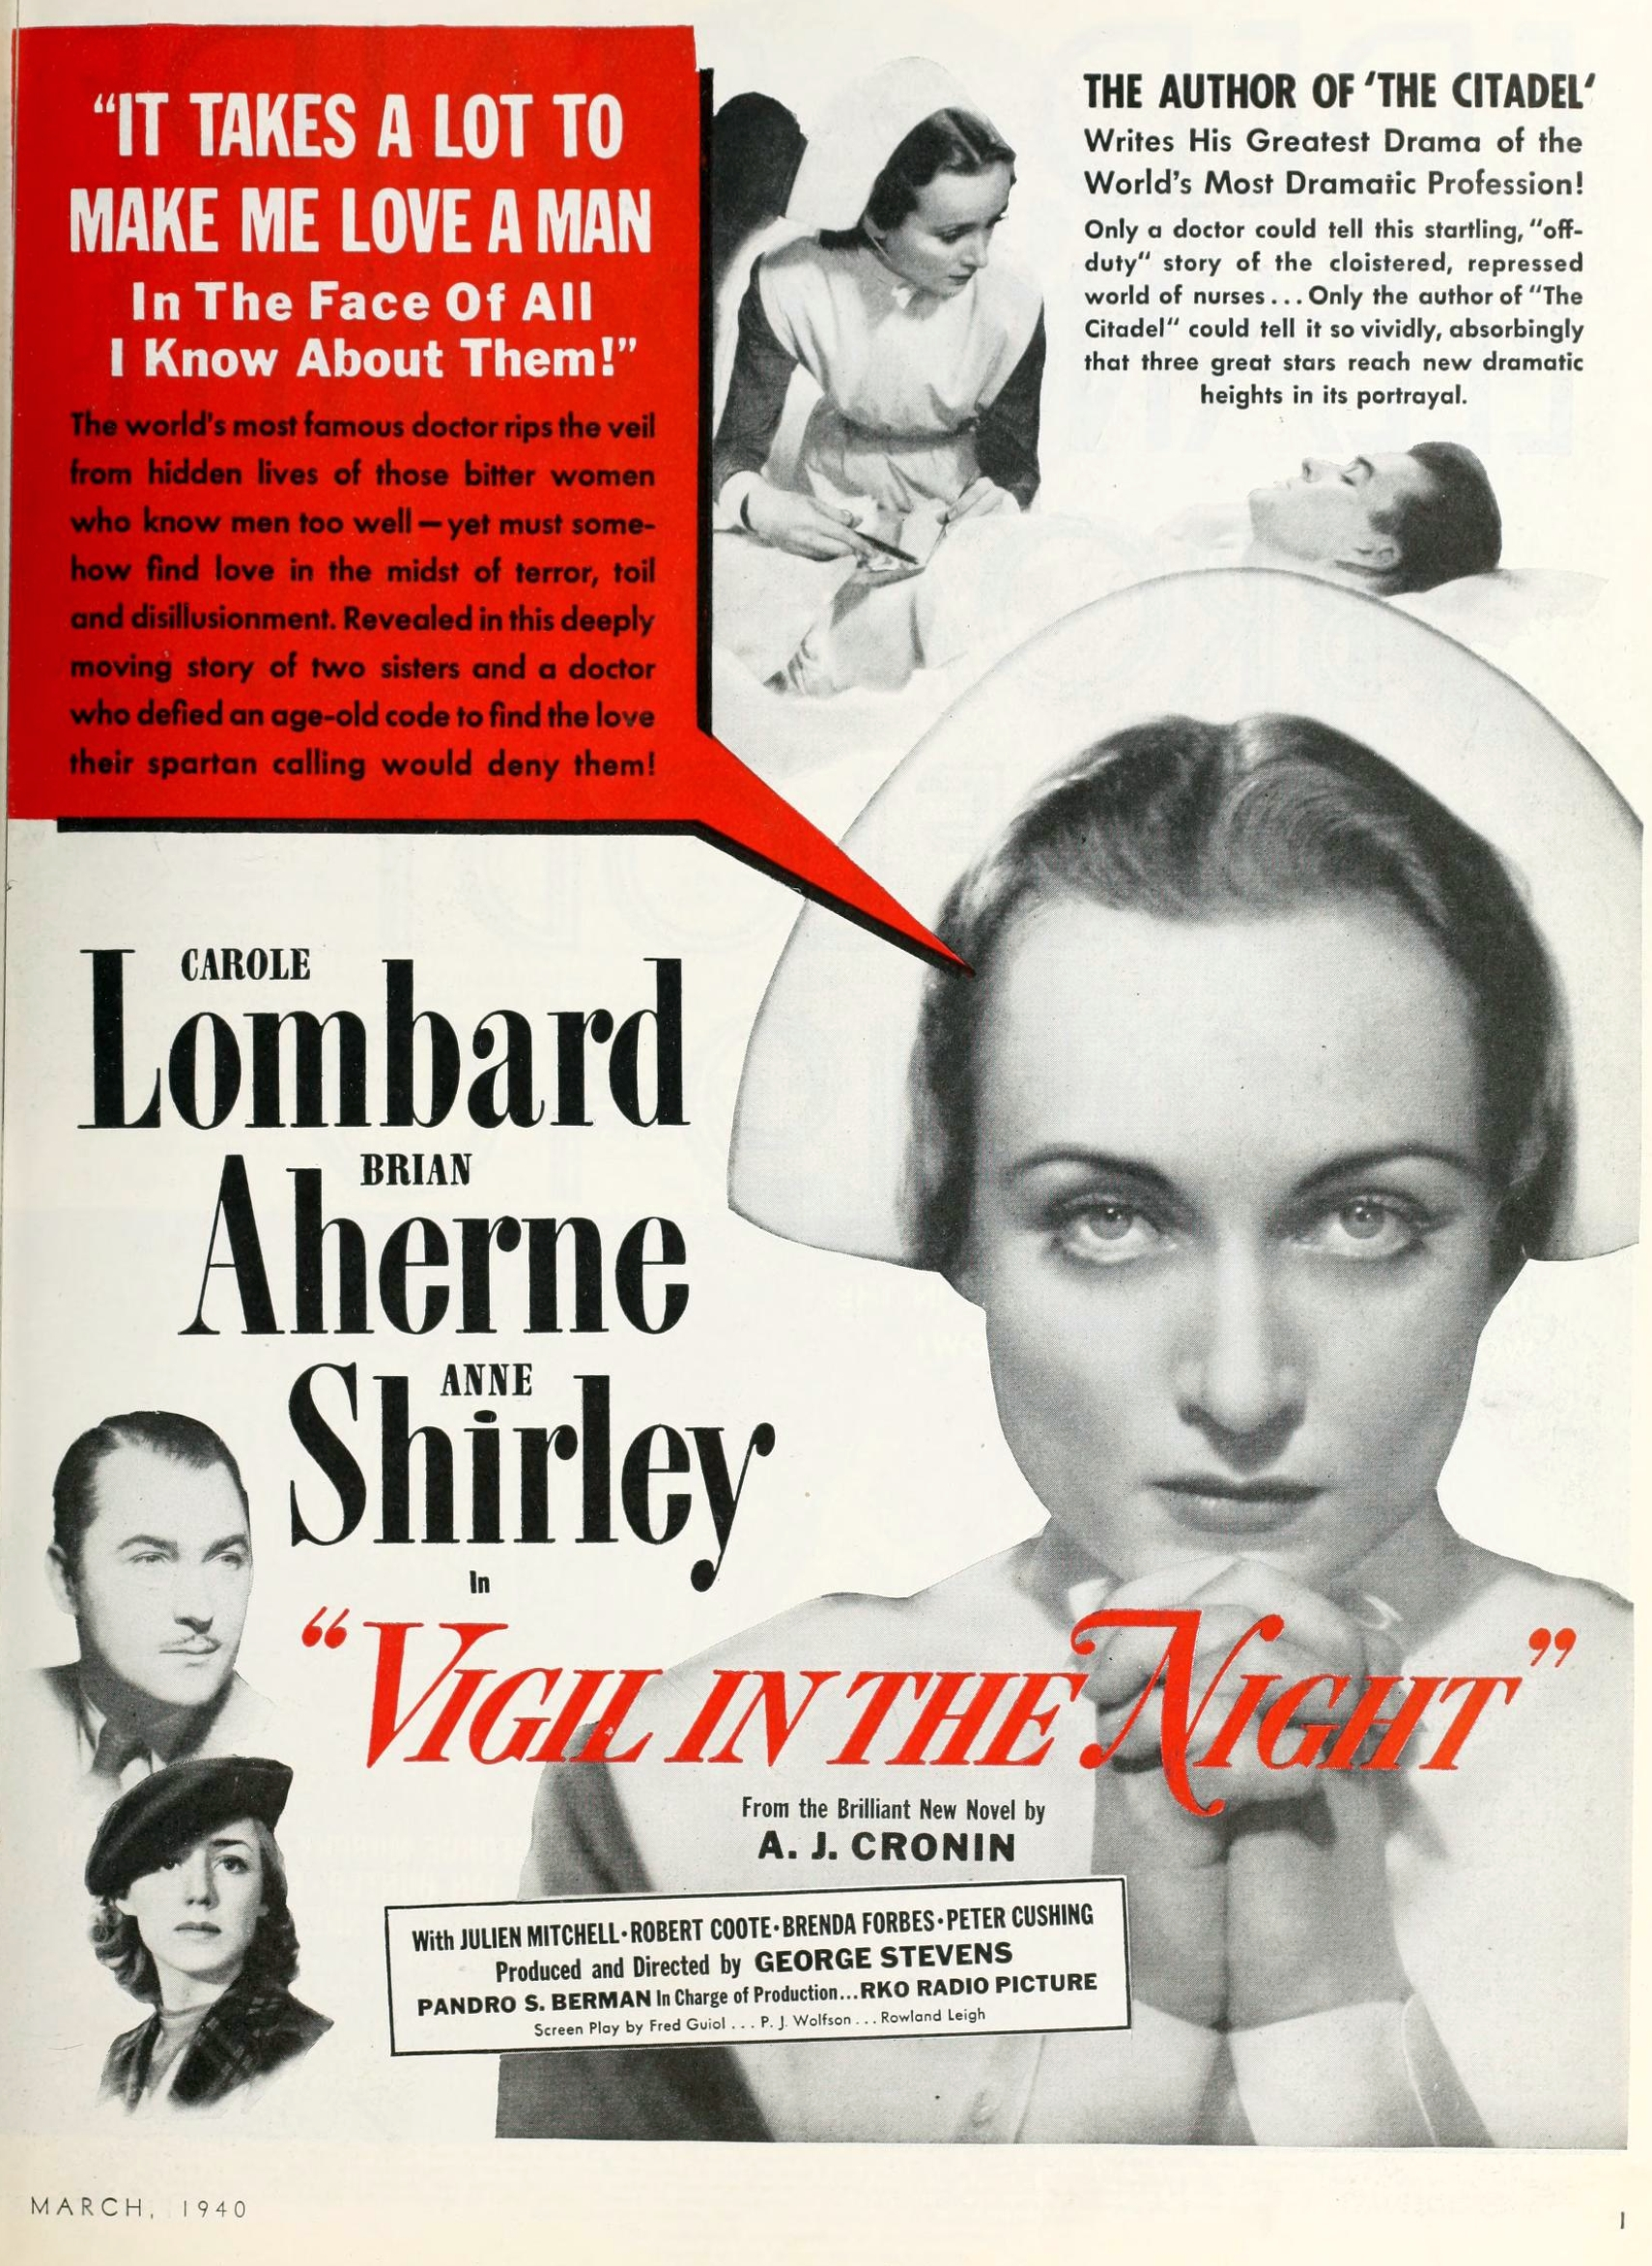 carole lombard photoplay march 1940 ad large